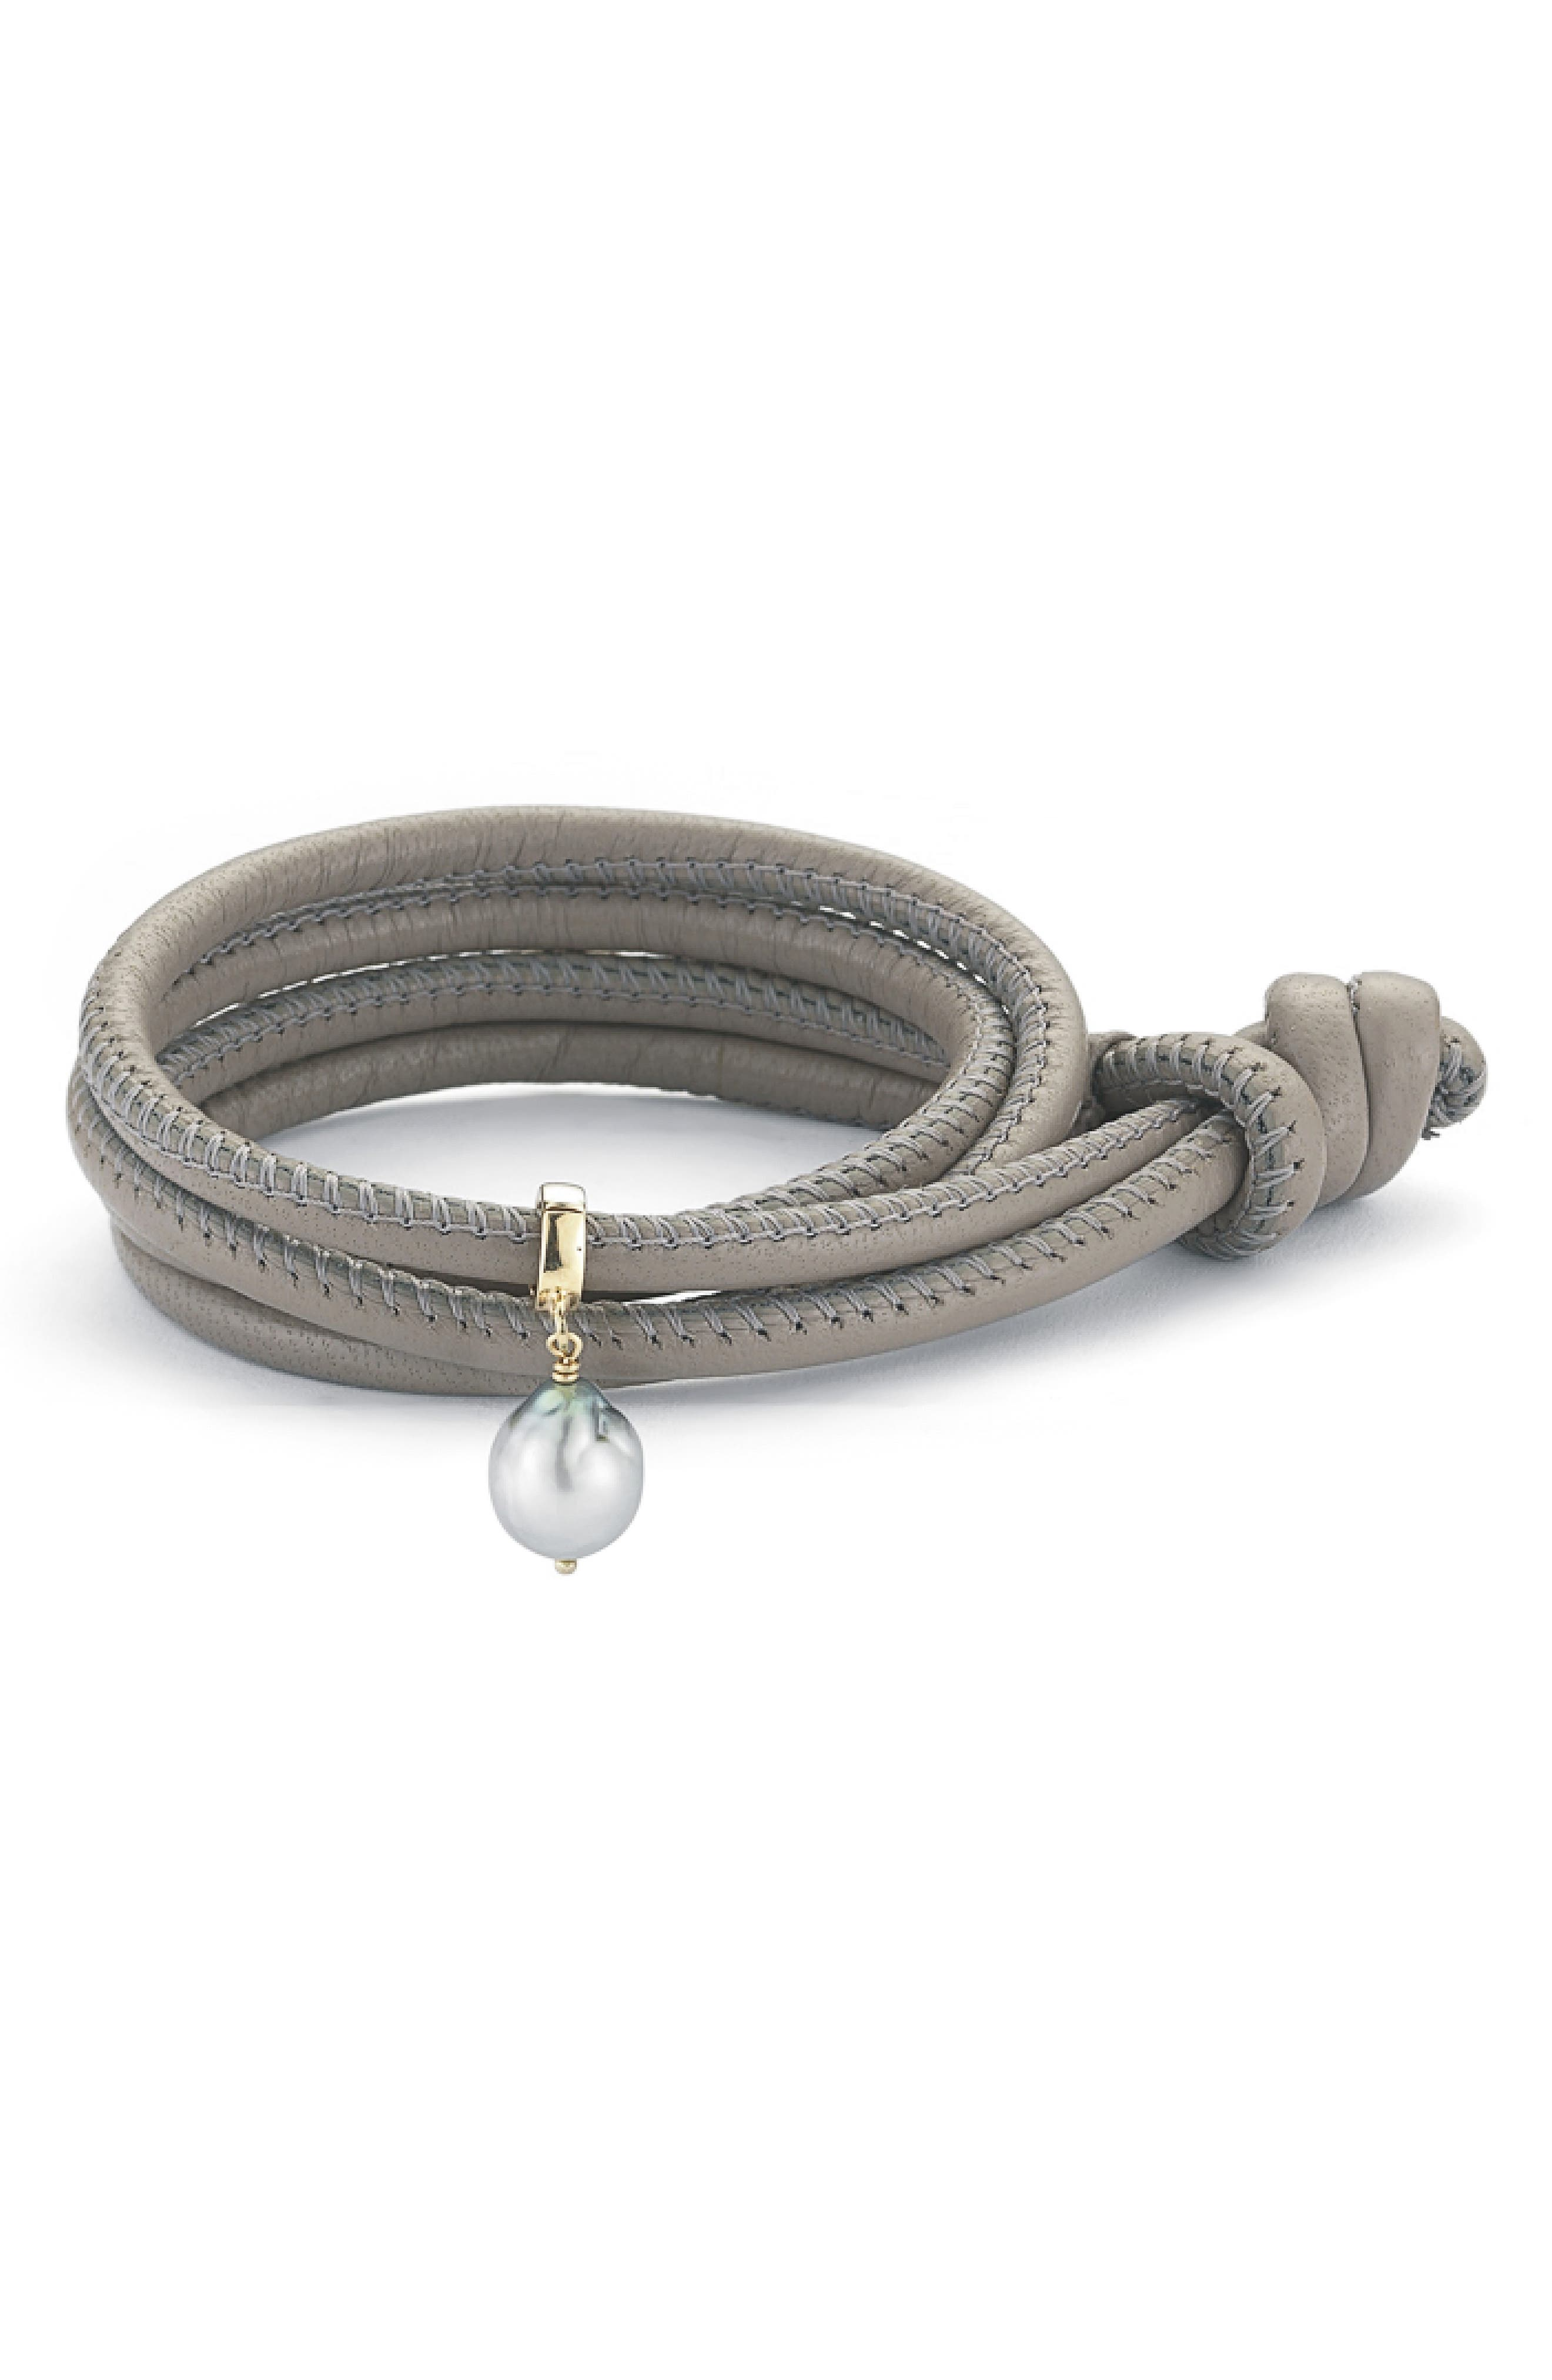 Leather & Freshwater Pearl Convertible Choker,                             Main thumbnail 1, color,                             TAUPE LEATHER